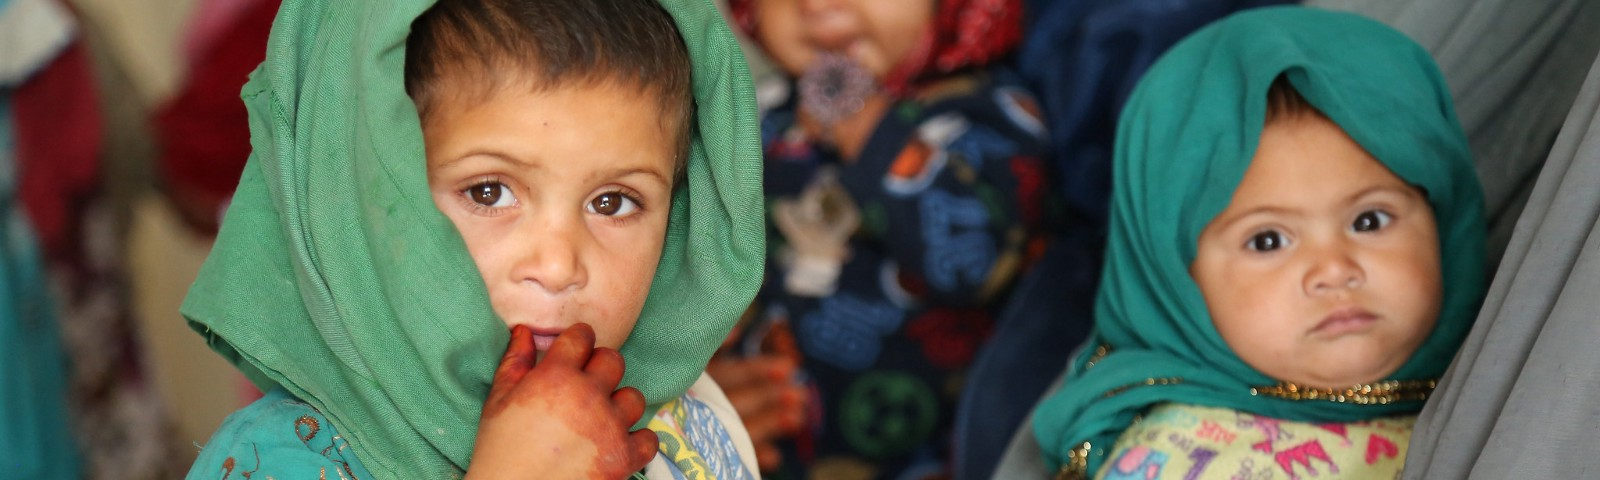 Children at a hospital in Afghanistan. Photo: © Ishaq Anis/Rumi Consultancy/World Bank